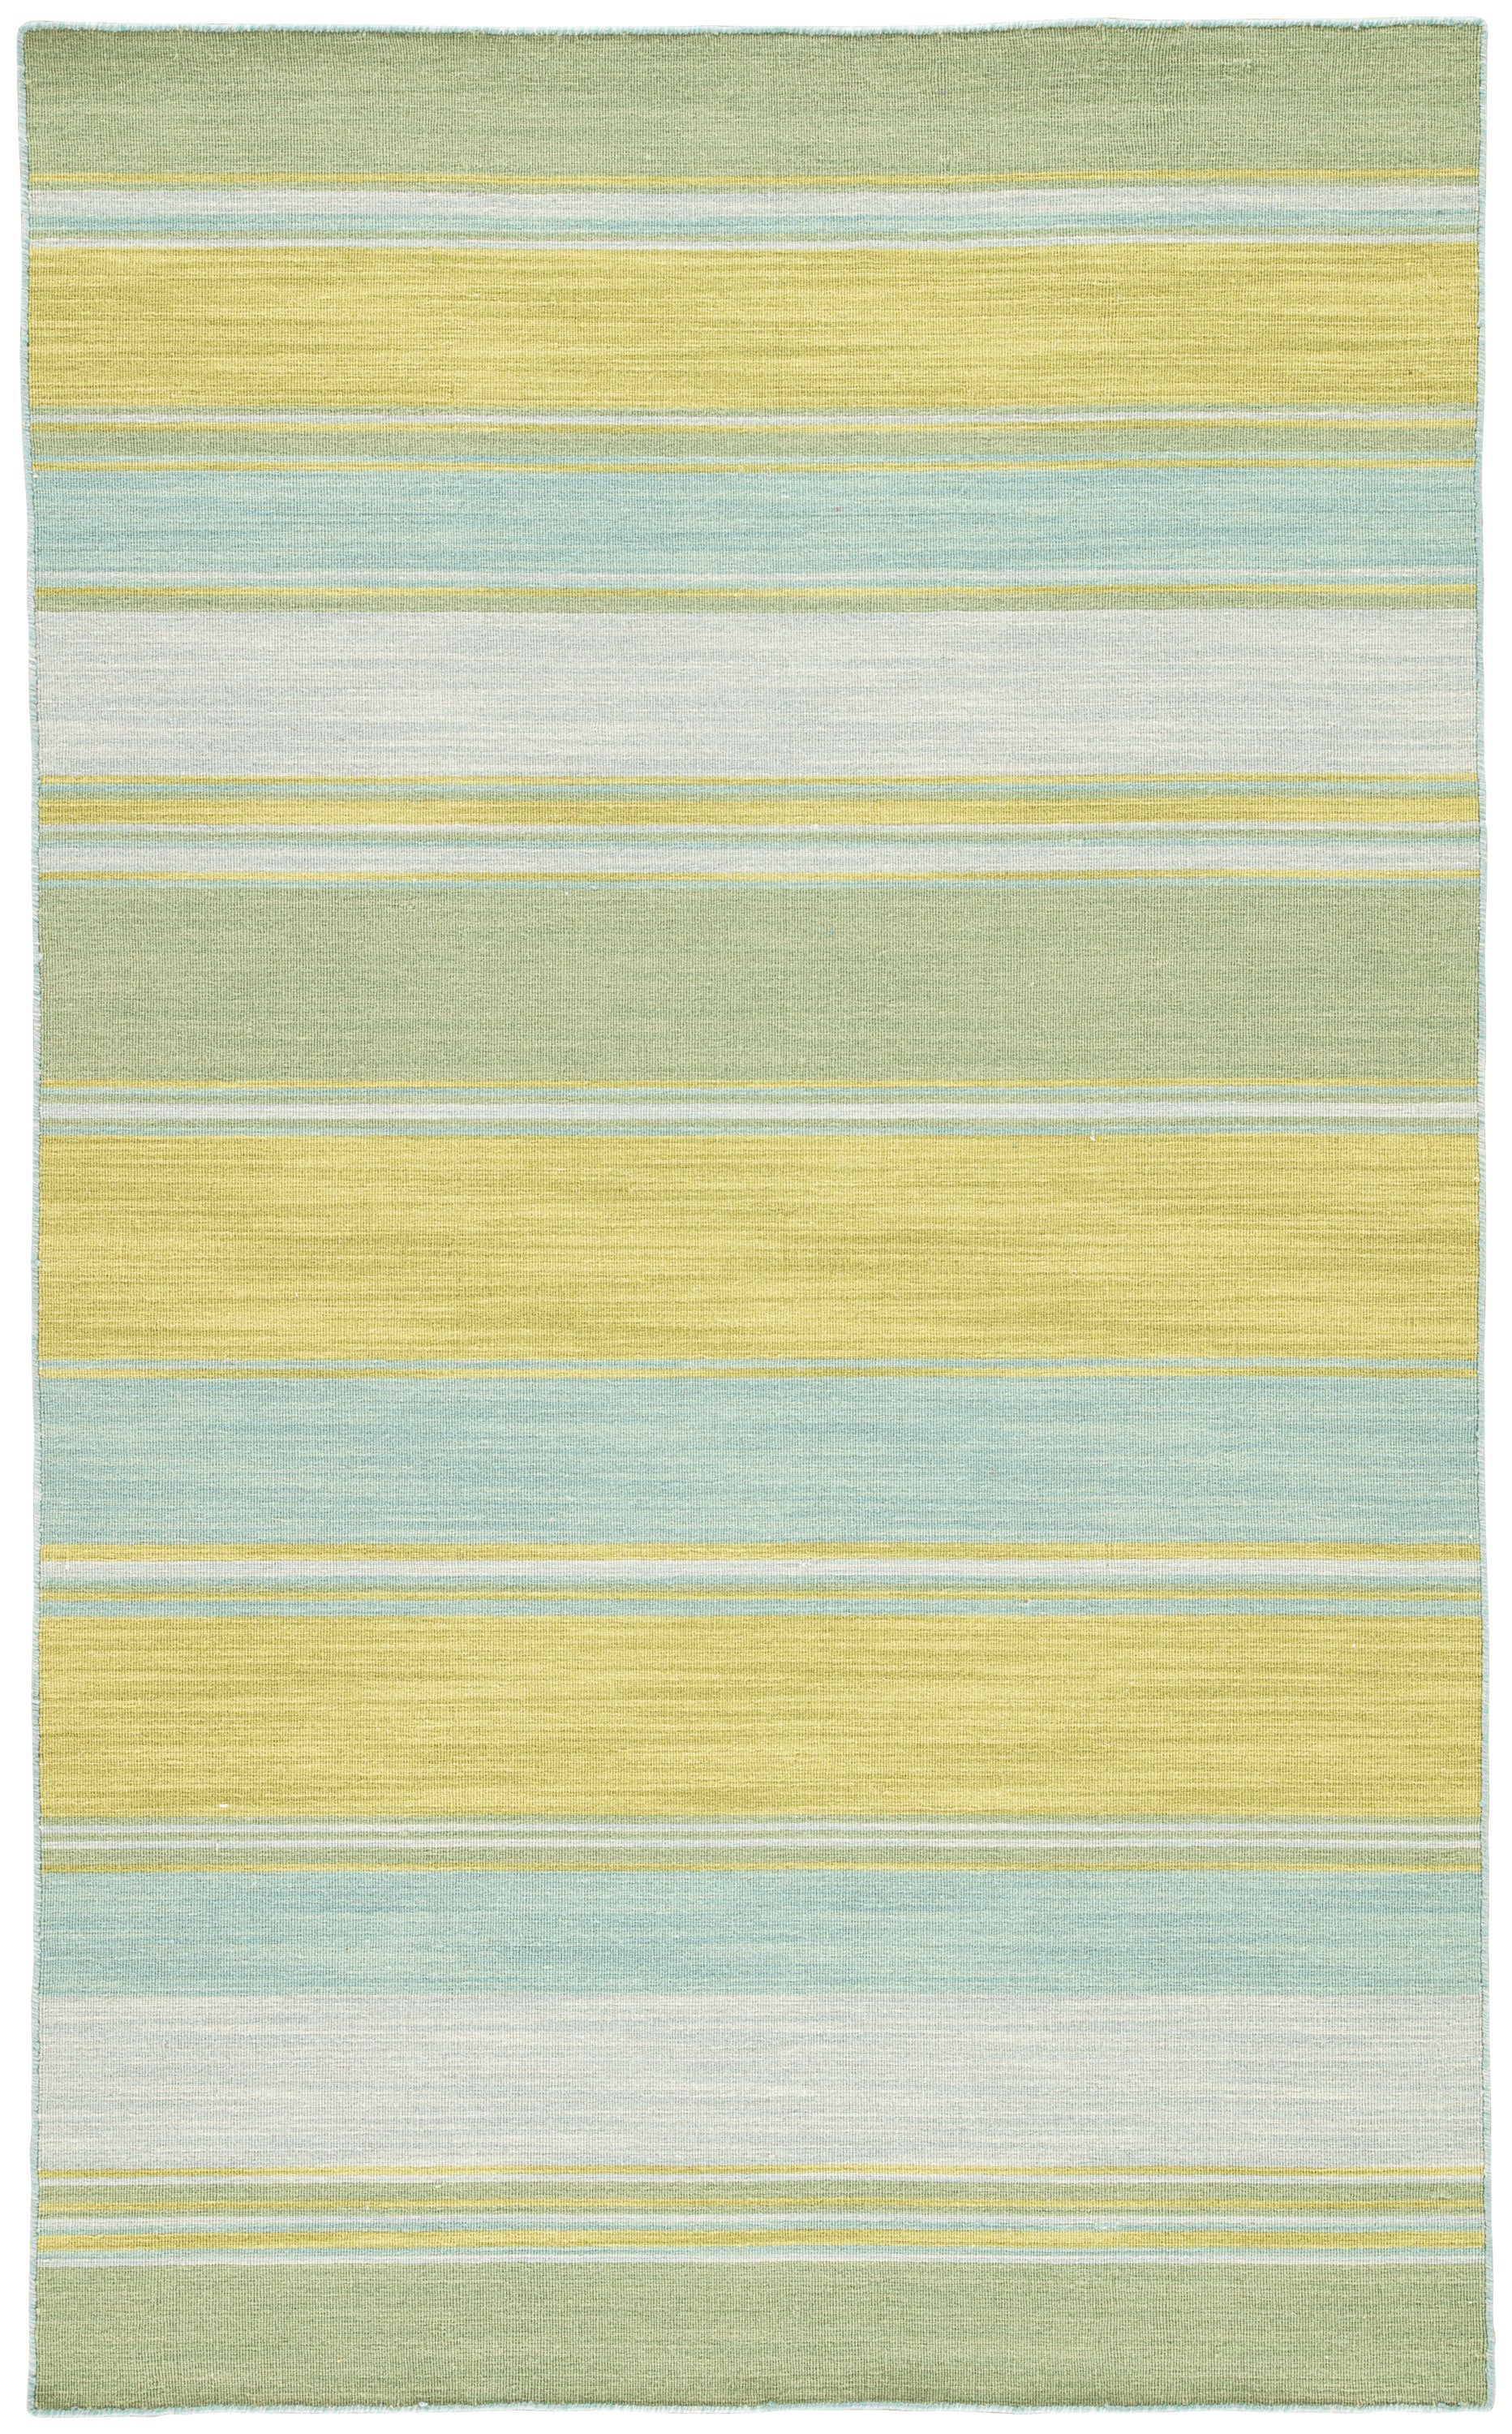 Rectangle Blue Stripe Dhurrie Wool Transitional recommended for Bedroom, Bathroom, Dining Room, Office, Hallway, Living Room